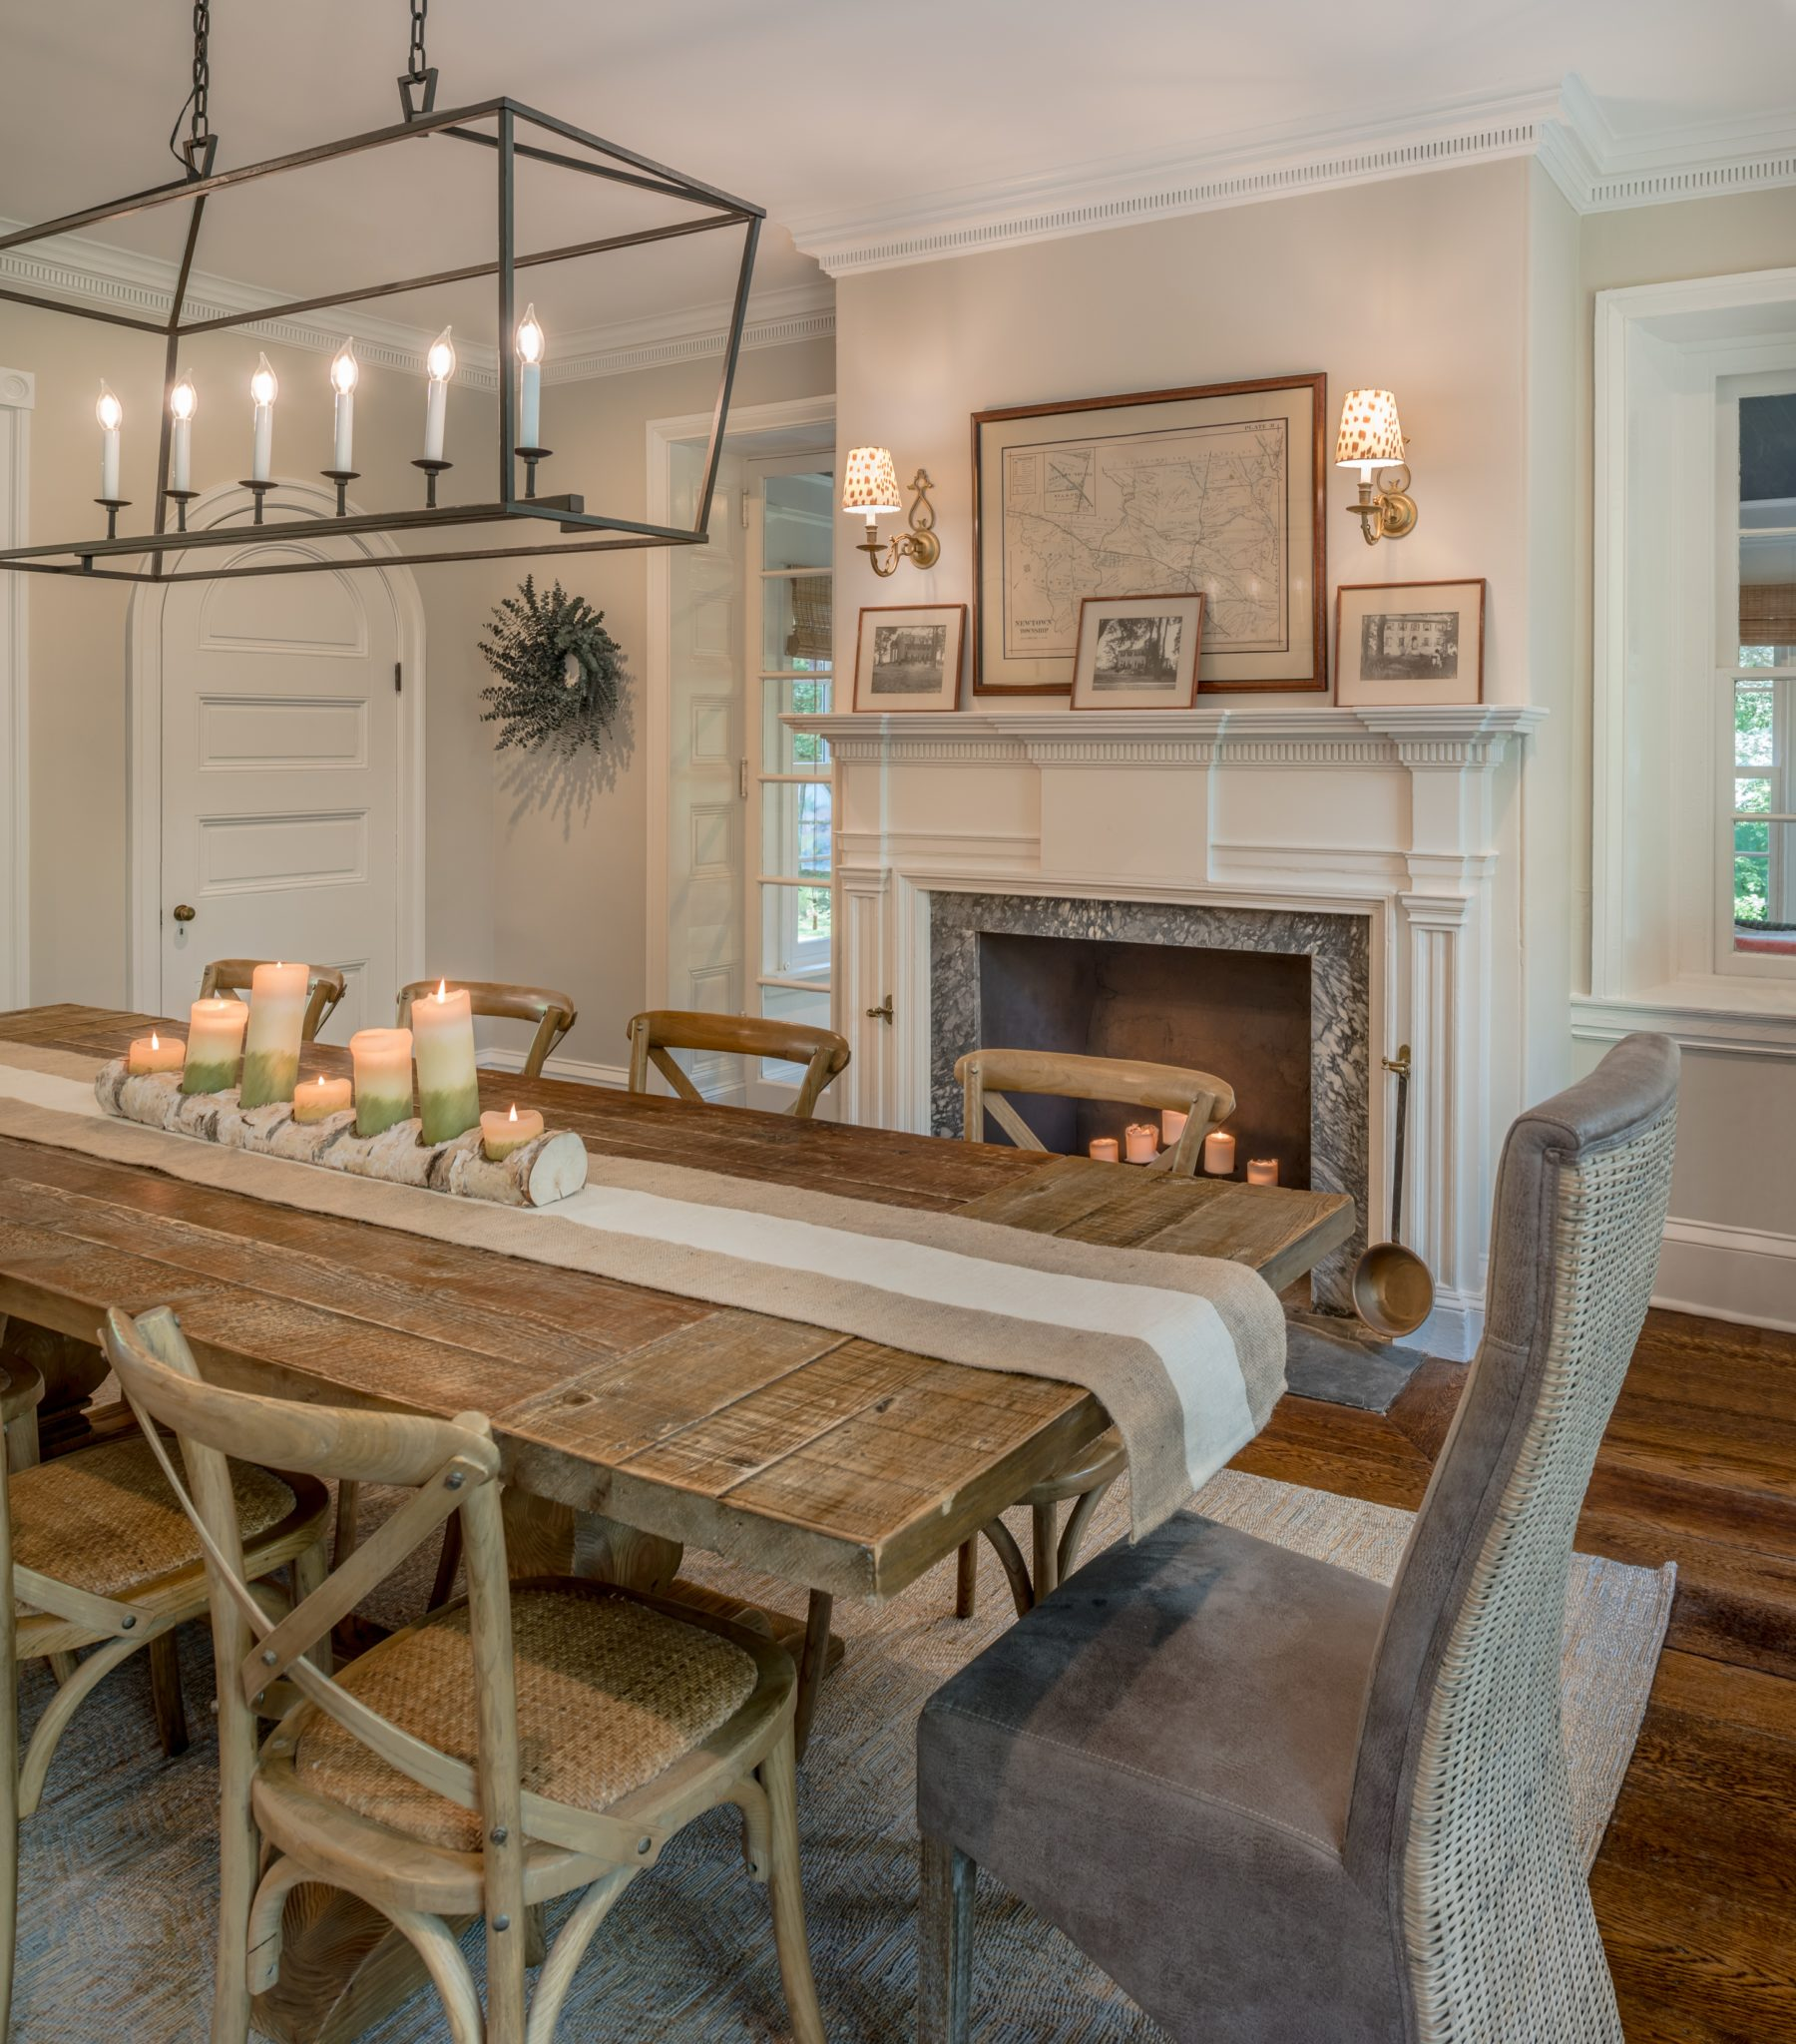 Renovated dining room of a 19th century Pennsylvania Farmhouse by Period Architecture